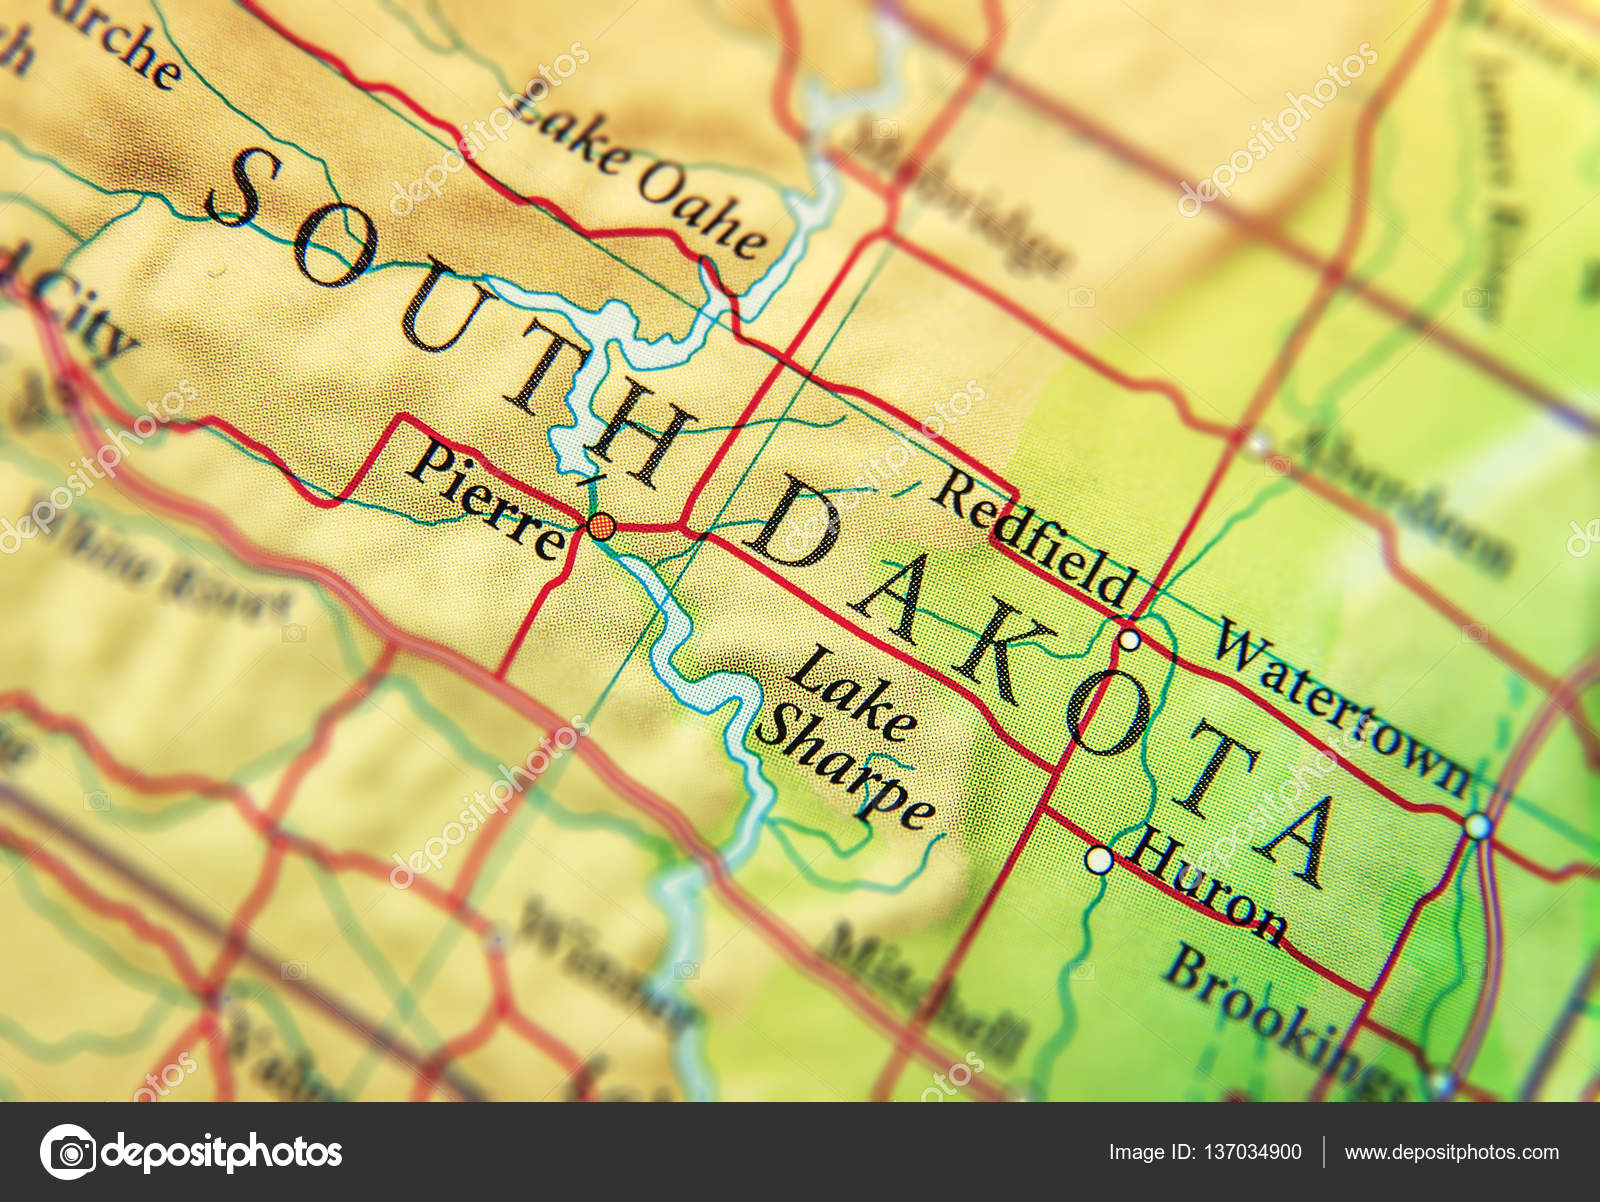 Geographic map of US state South Dakota with important cities